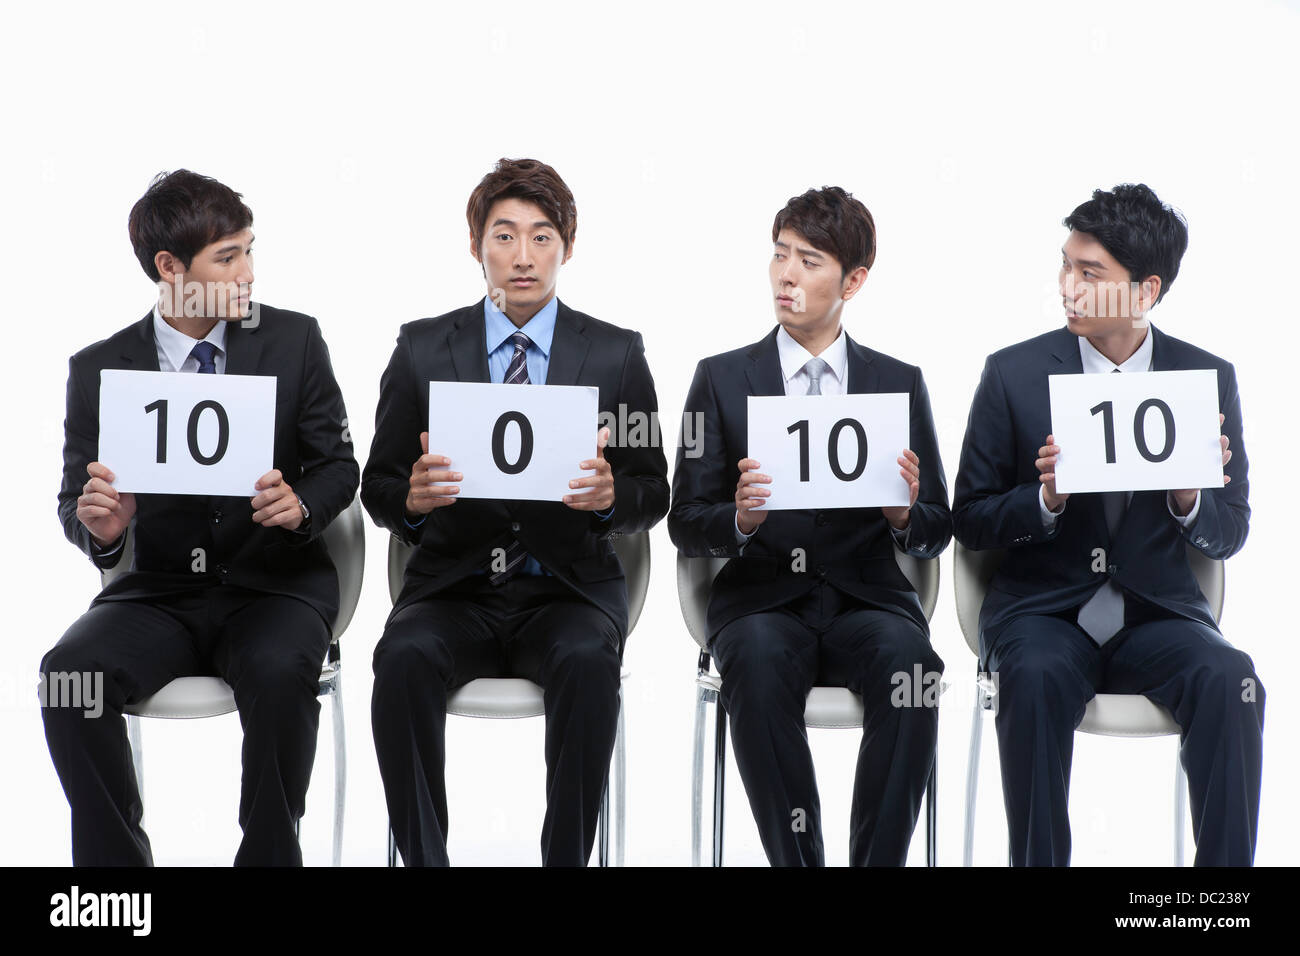 a businessman with zero score among others with 10 score - Stock Image